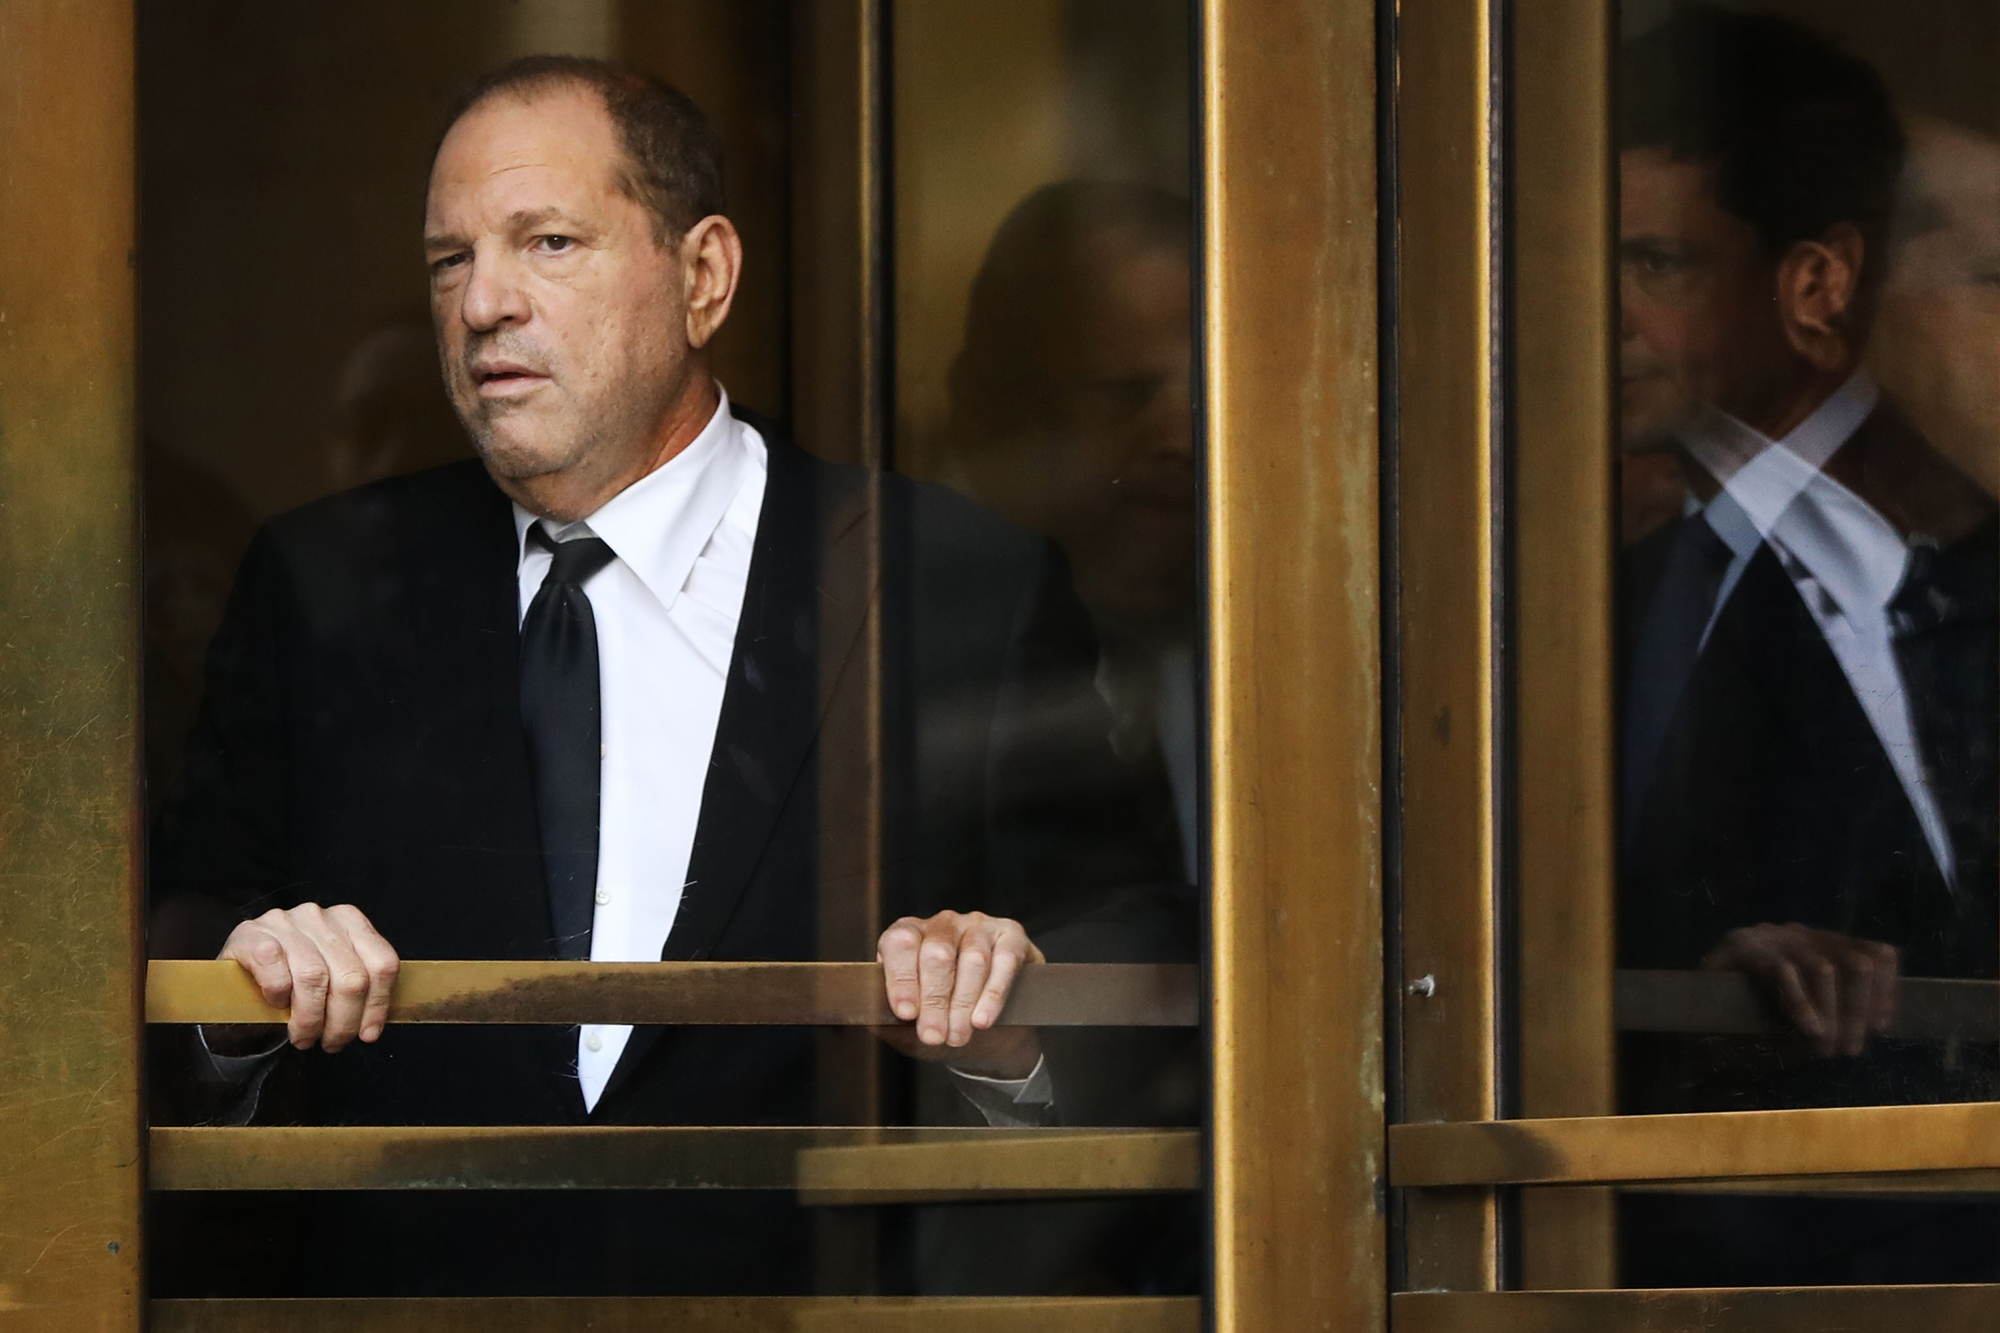 Attorneys for alleged Weinstein victim reject tentative